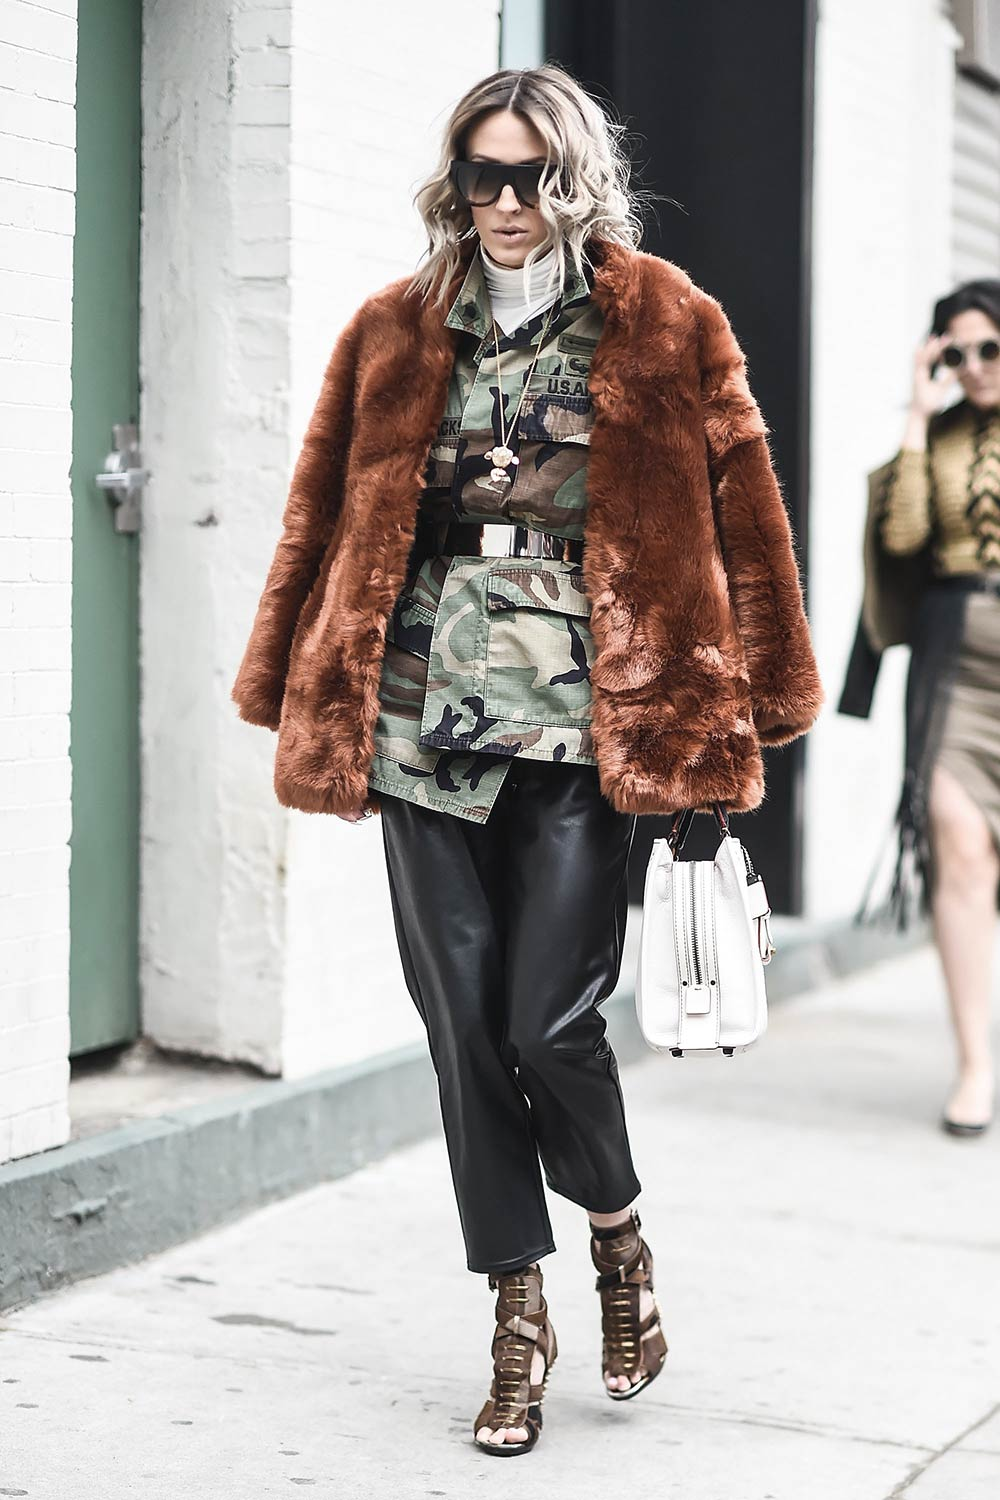 Olivia Barr street style in NYC